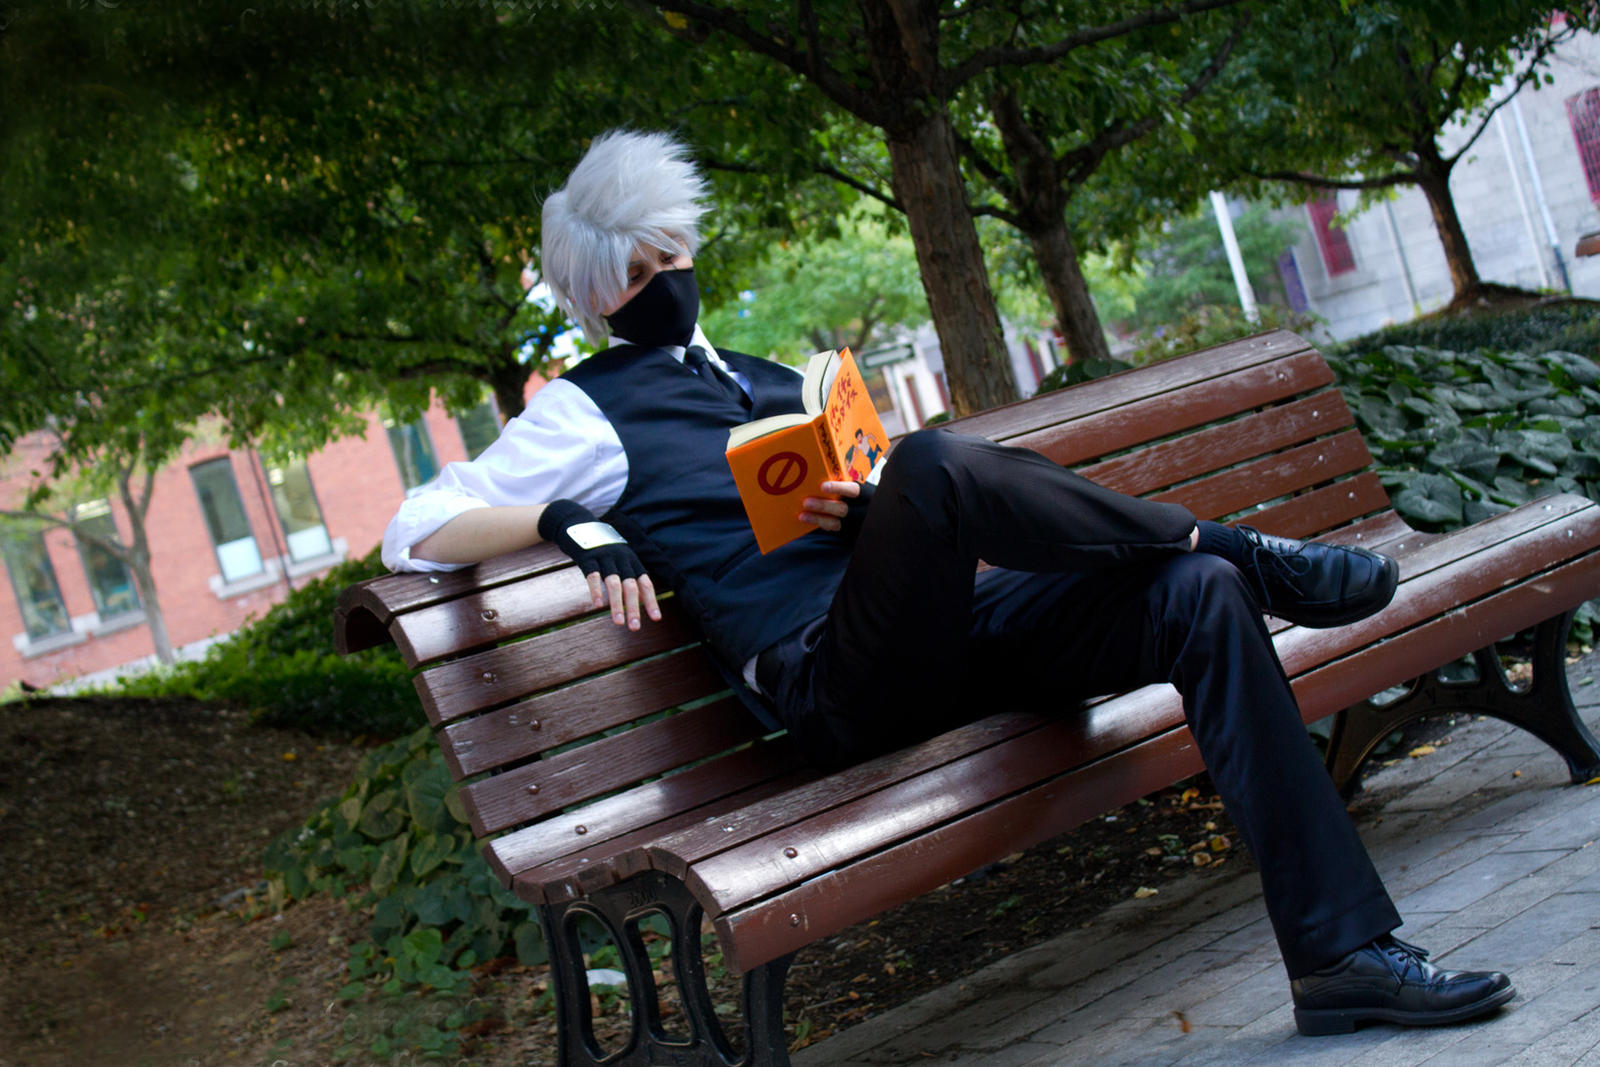 Just chillin' by Suki-Cosplay